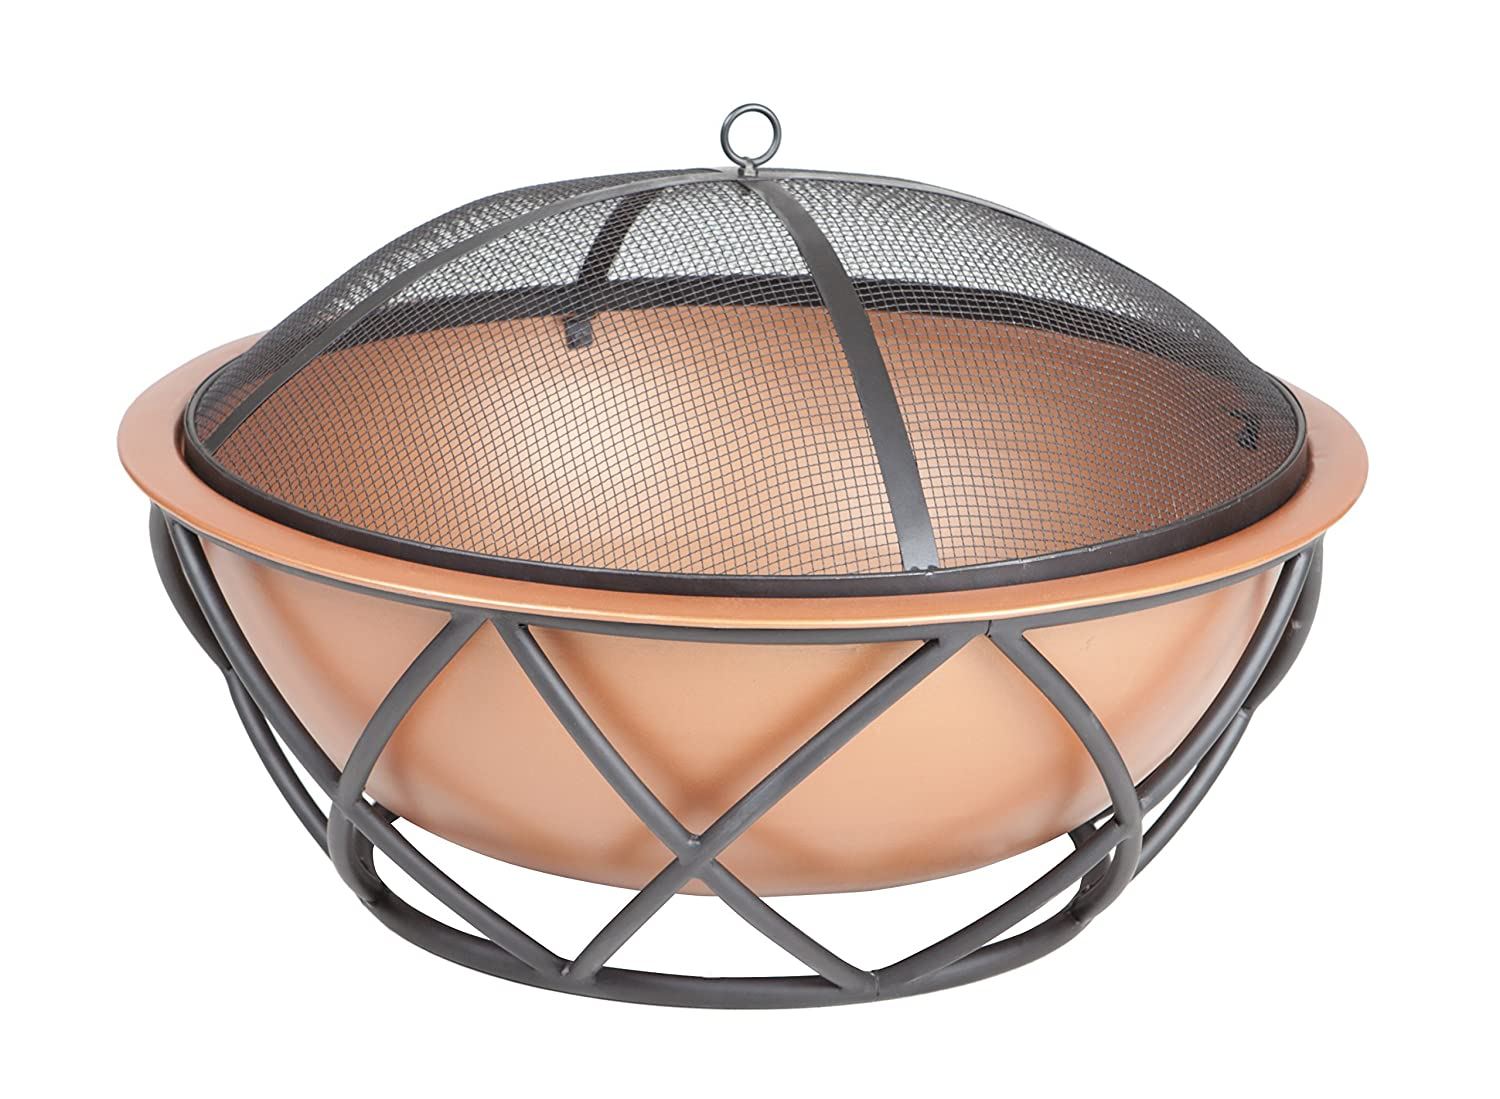 Fire Sense Barzelonia Round Copper Look Fire Pit